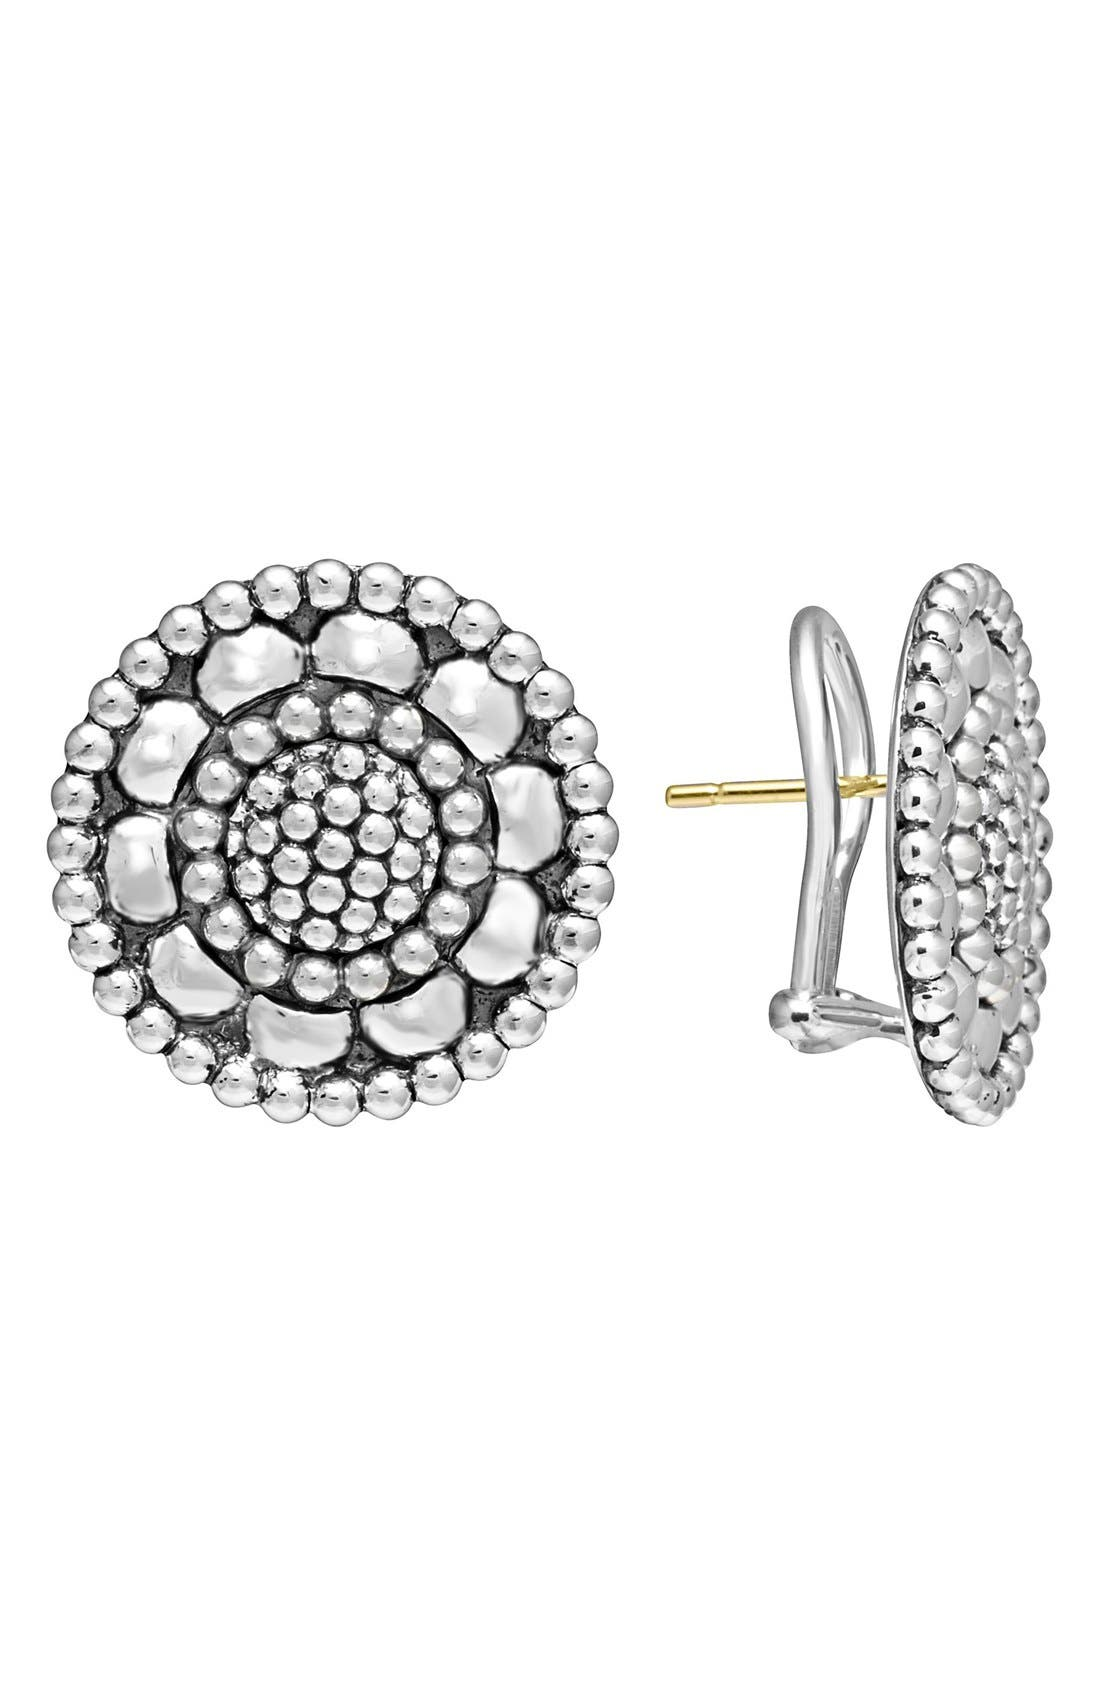 Main Image - LAGOS 'Voyage' Caviar Stud Earrings